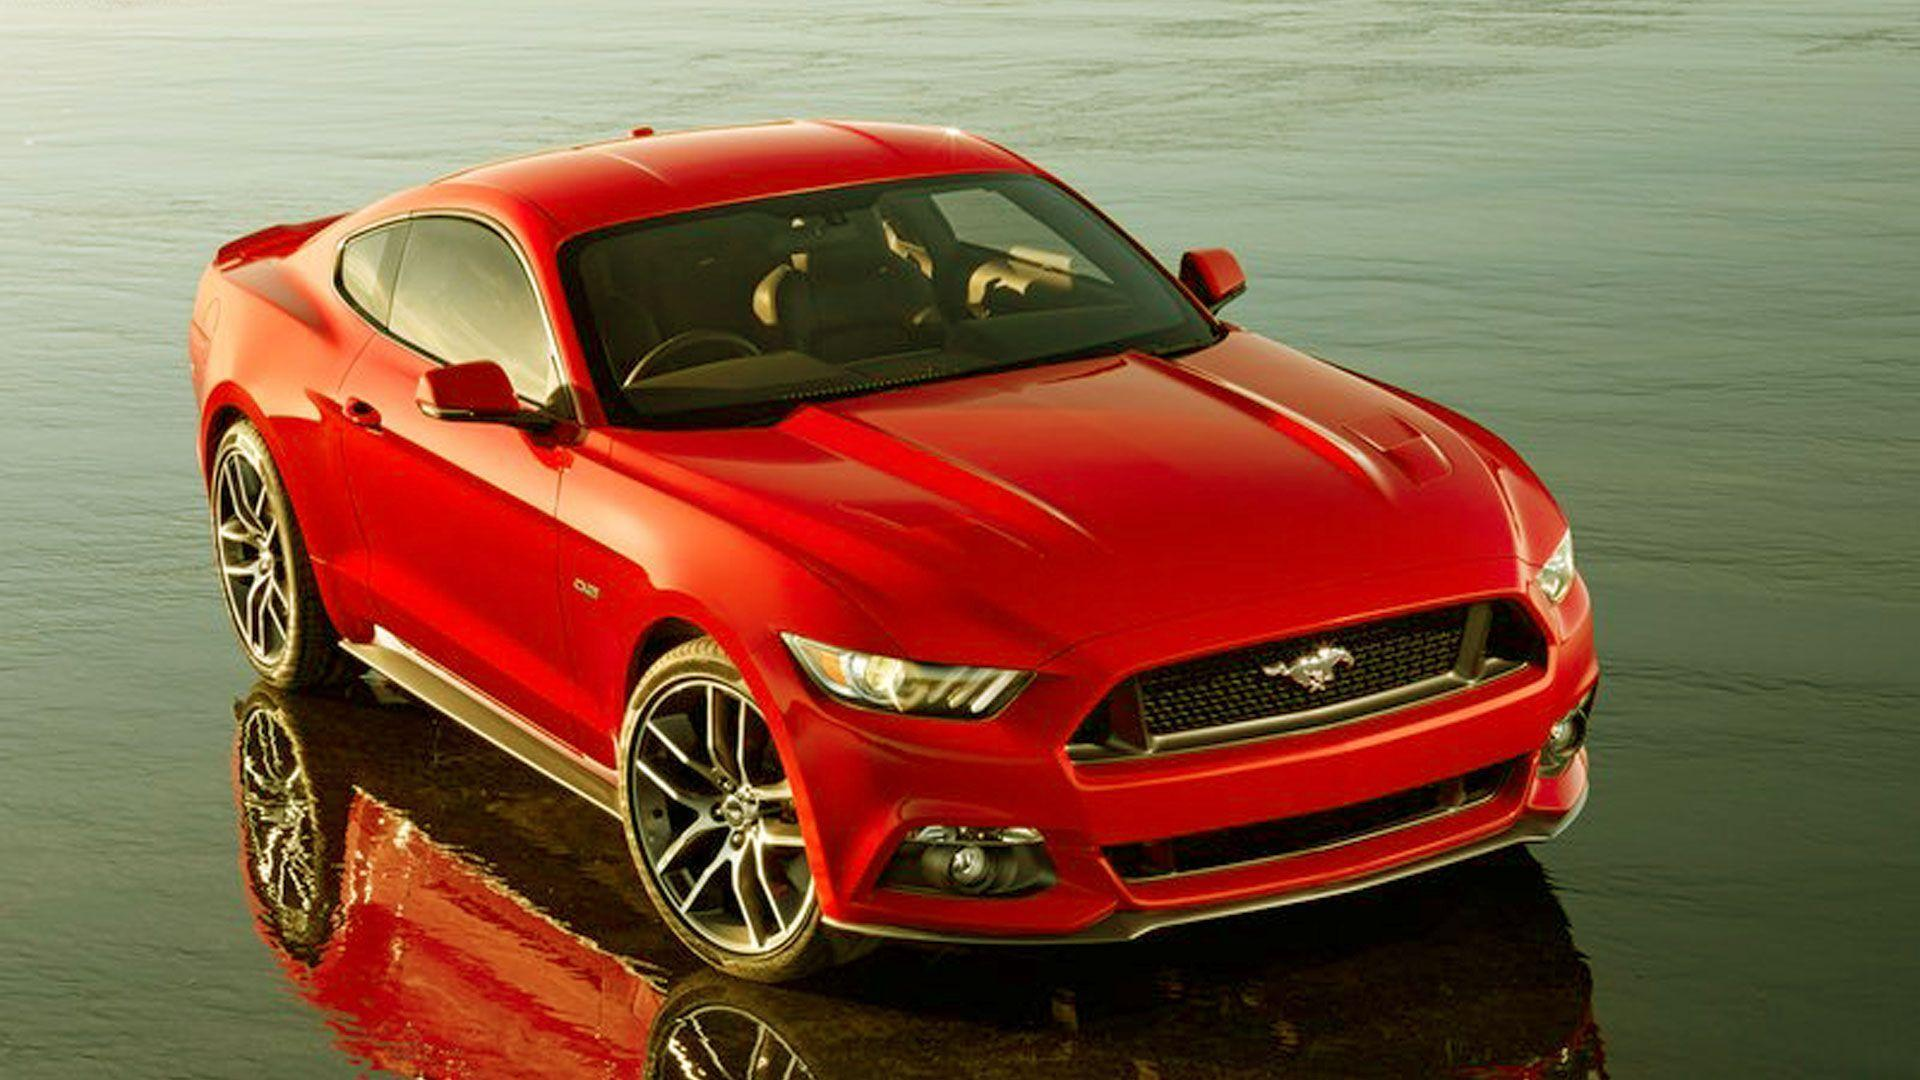 Wallpaper Mobil Sport Mustang: 2015 Mustang Gt Wallpapers